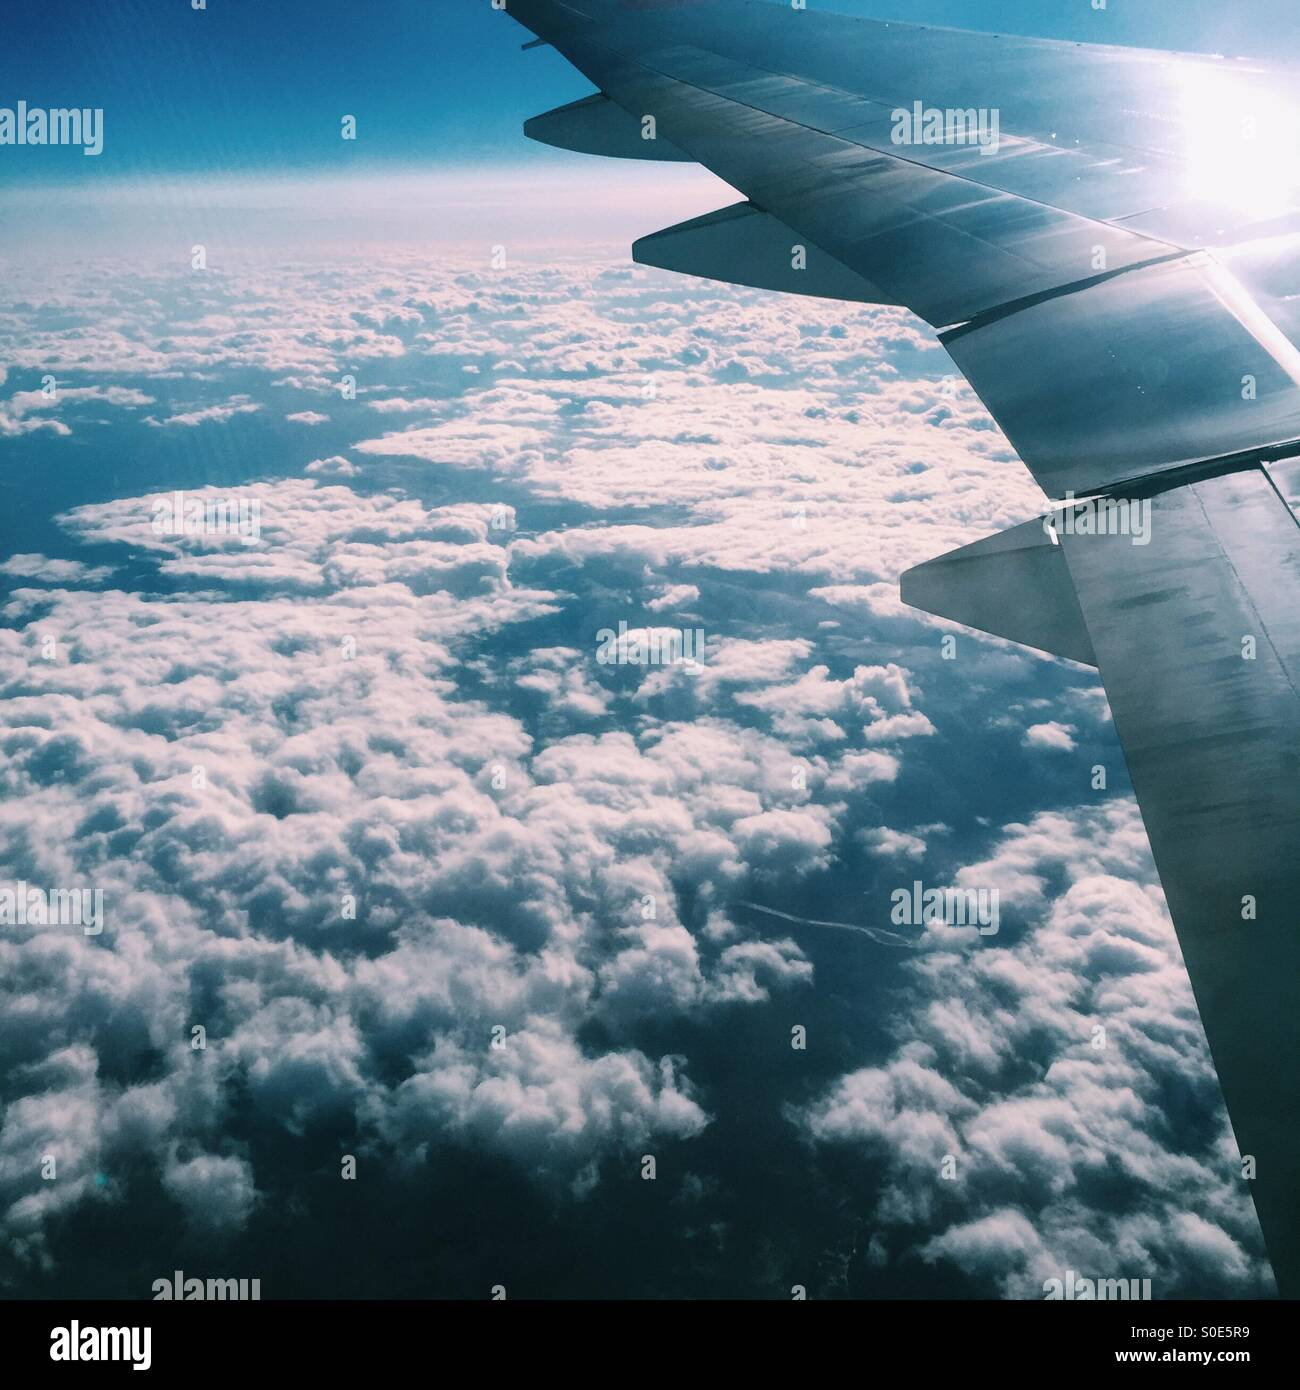 Aerial view of airplane wing and clouds as seen from window of airplane. Stock Photo